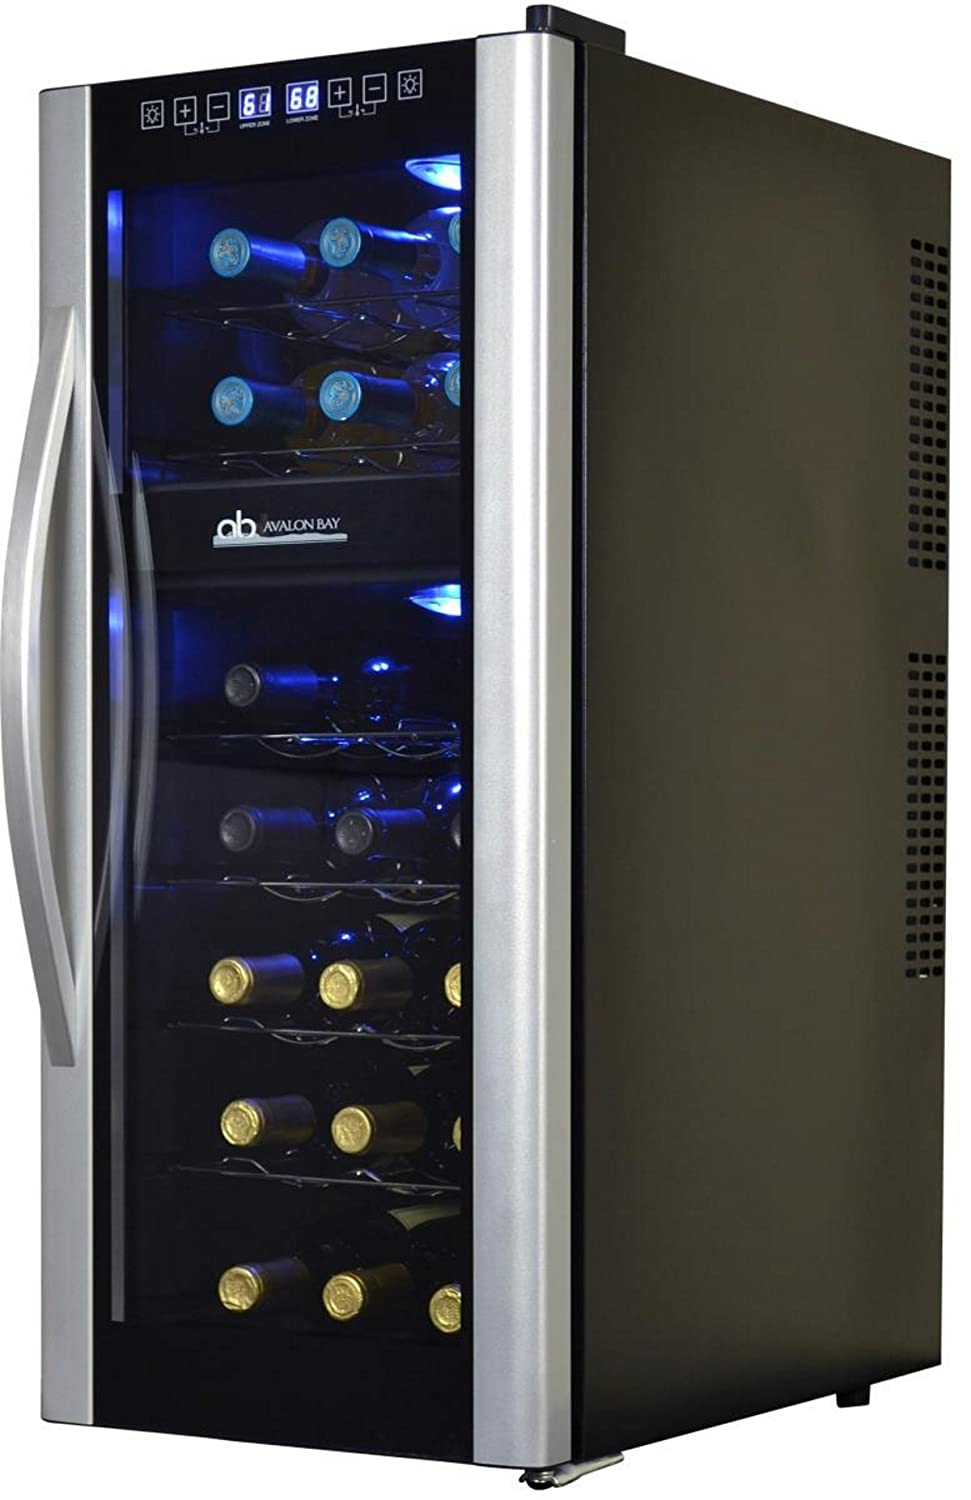 Avalon Bay AB-WINE12S 12 Bottle Single Zone Wine Cooler